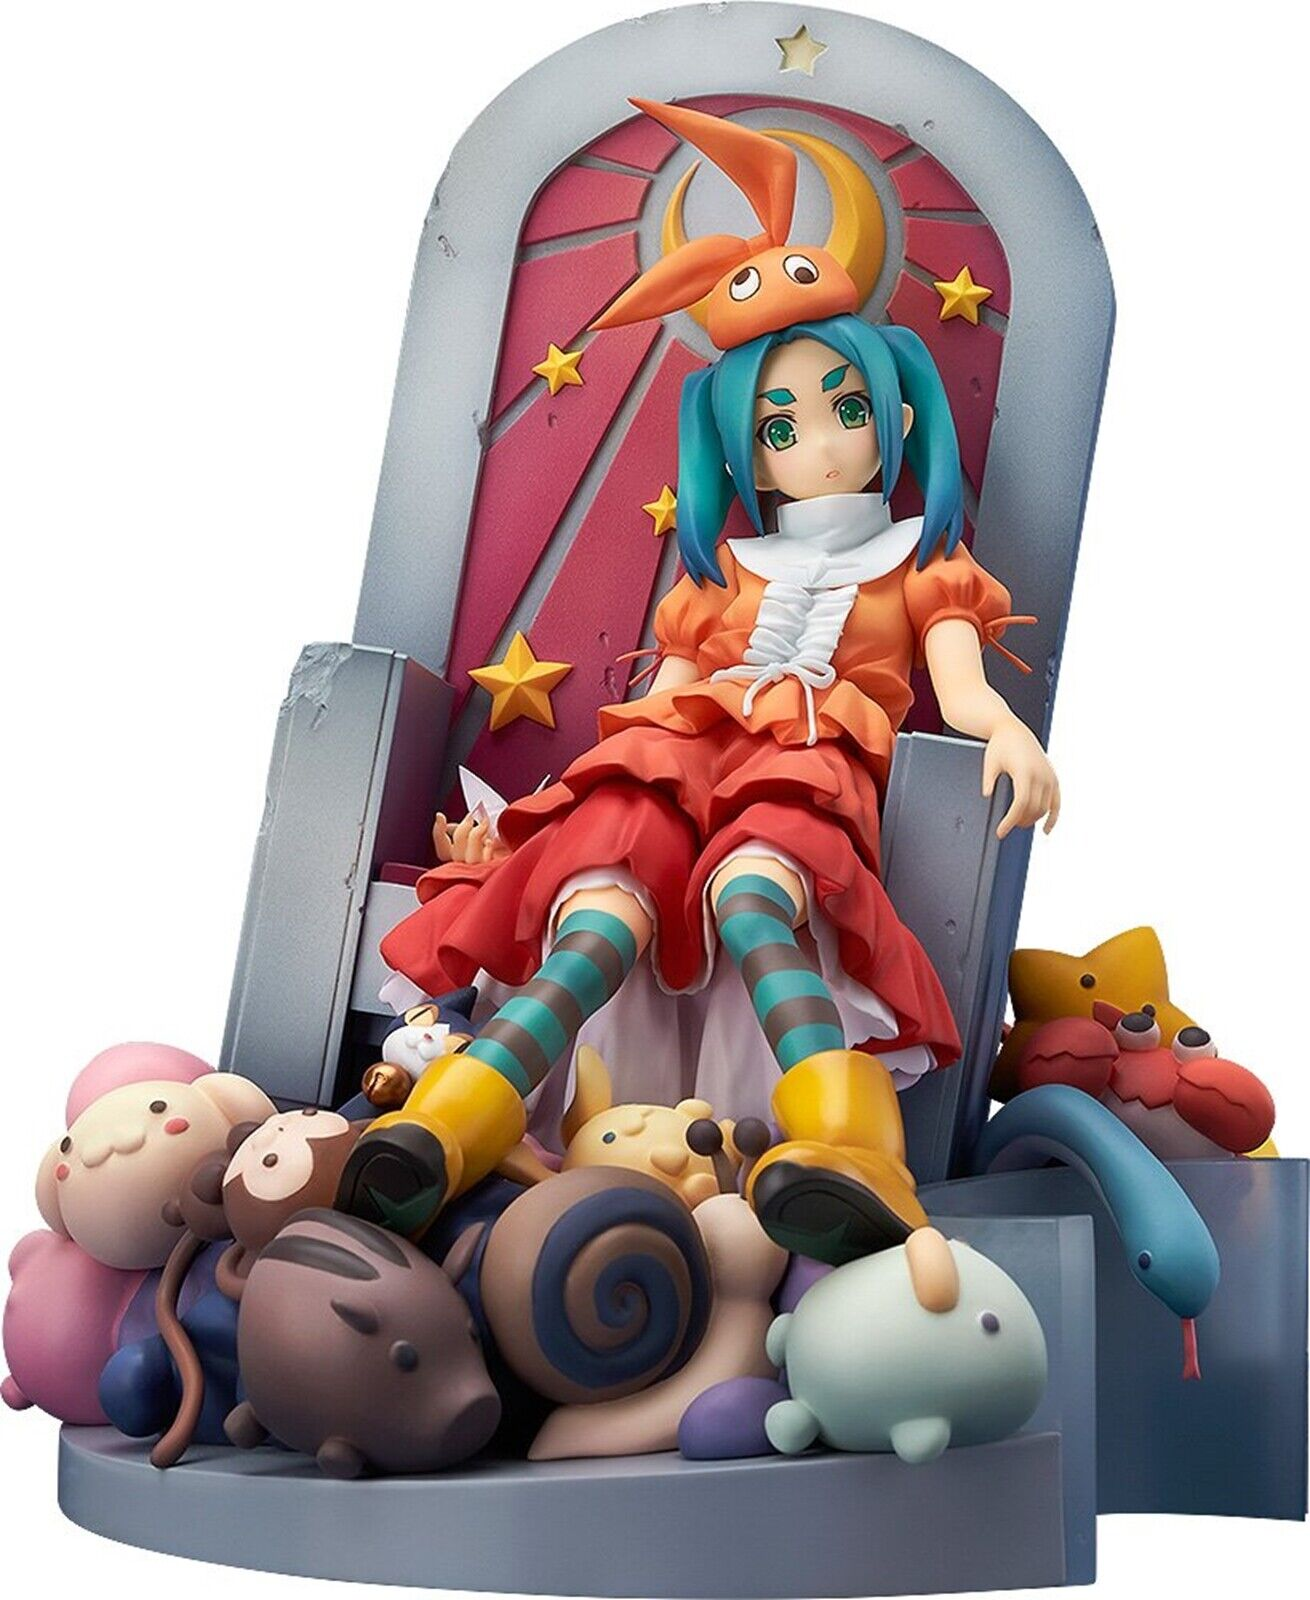 Good Smile Yotsugi Ononoki Deluxe Version 1 8 Scale PVC Completed New Japan